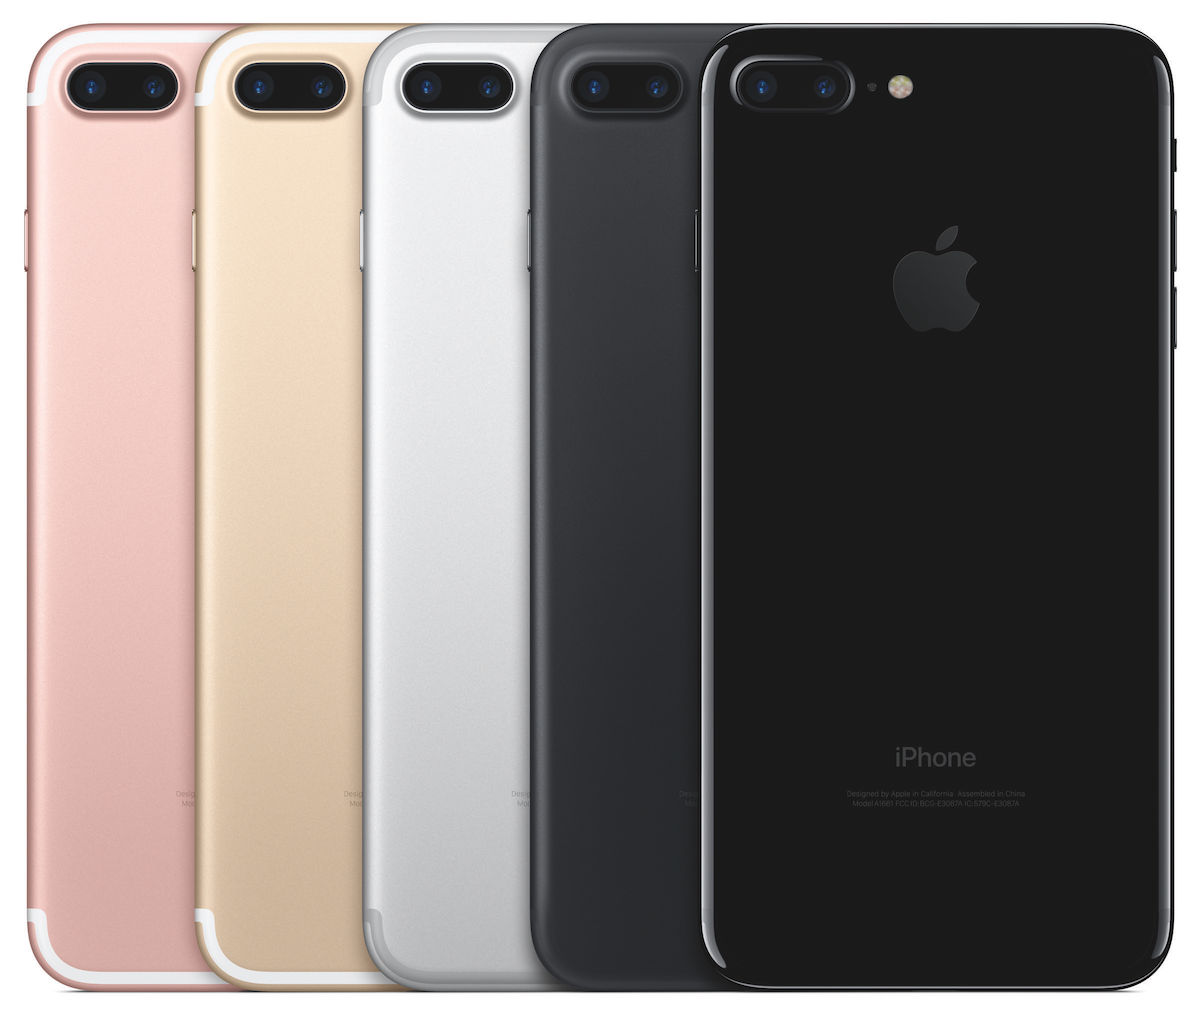 iPhone7Plus-Lineup-PB_PR-PRINT-2